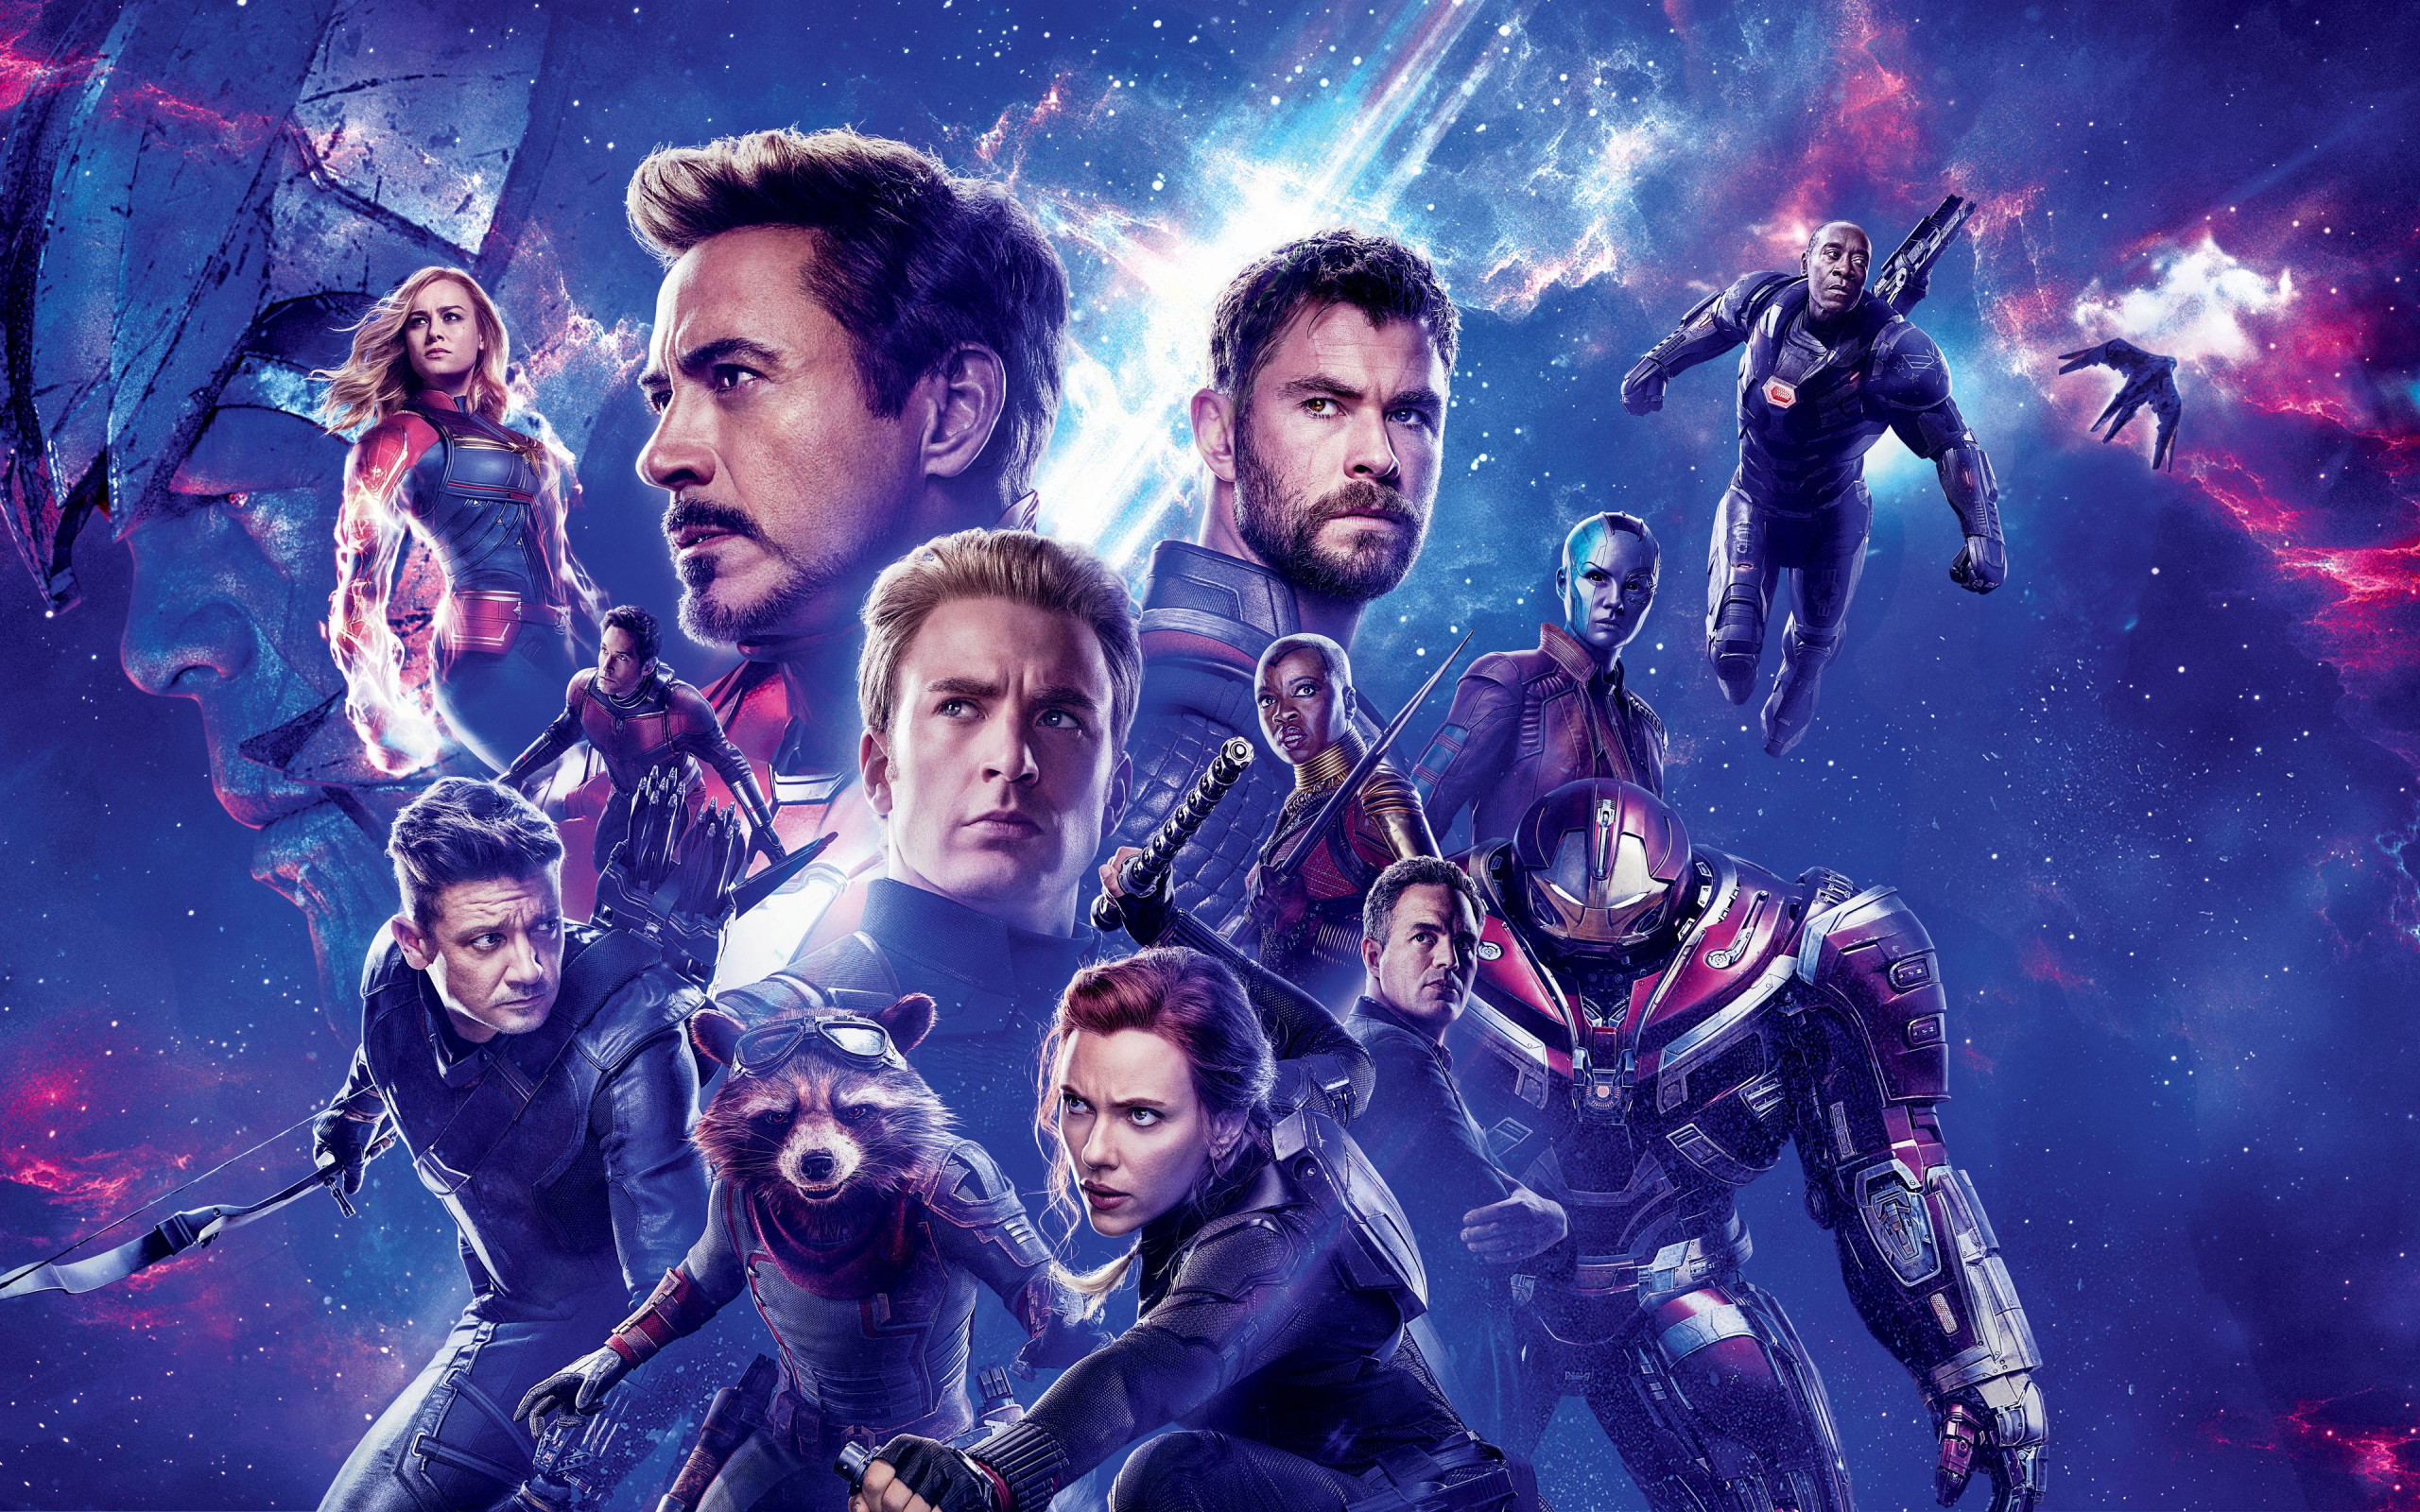 Avengers: Endgame wallpaper 2560x1600